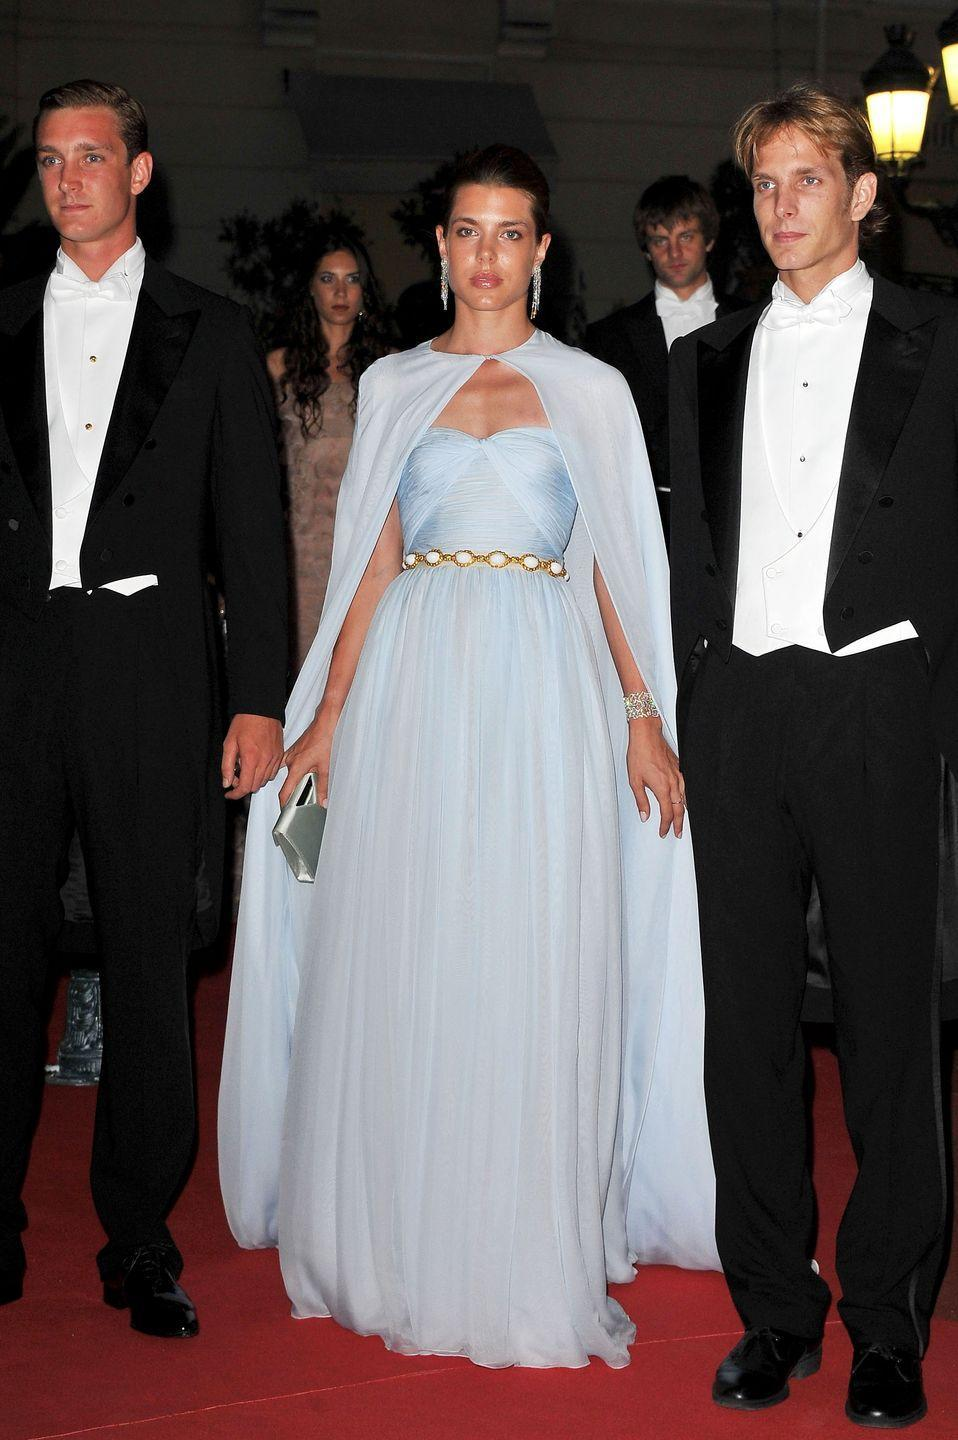 """<p>Grace Kelly's granddaughter set the fashion world abuzz in this powder blue Giambattista Valli gown and cape set. Many publications named <a href=""""https://www.townandcountrymag.com/society/tradition/g30769224/charlotte-casiraghi-photos-style/"""" rel=""""nofollow noopener"""" target=""""_blank"""" data-ylk=""""slk:Charlotte Casiraghi"""" class=""""link rapid-noclick-resp"""">Charlotte Casiraghi</a> the best-dressed guest at Prince Albert II of Monaco's 2011 wedding to Princess Charlene. The young royal has since made a name for herself in the fashion world, even becoming the face of Gucci. <br></p>"""